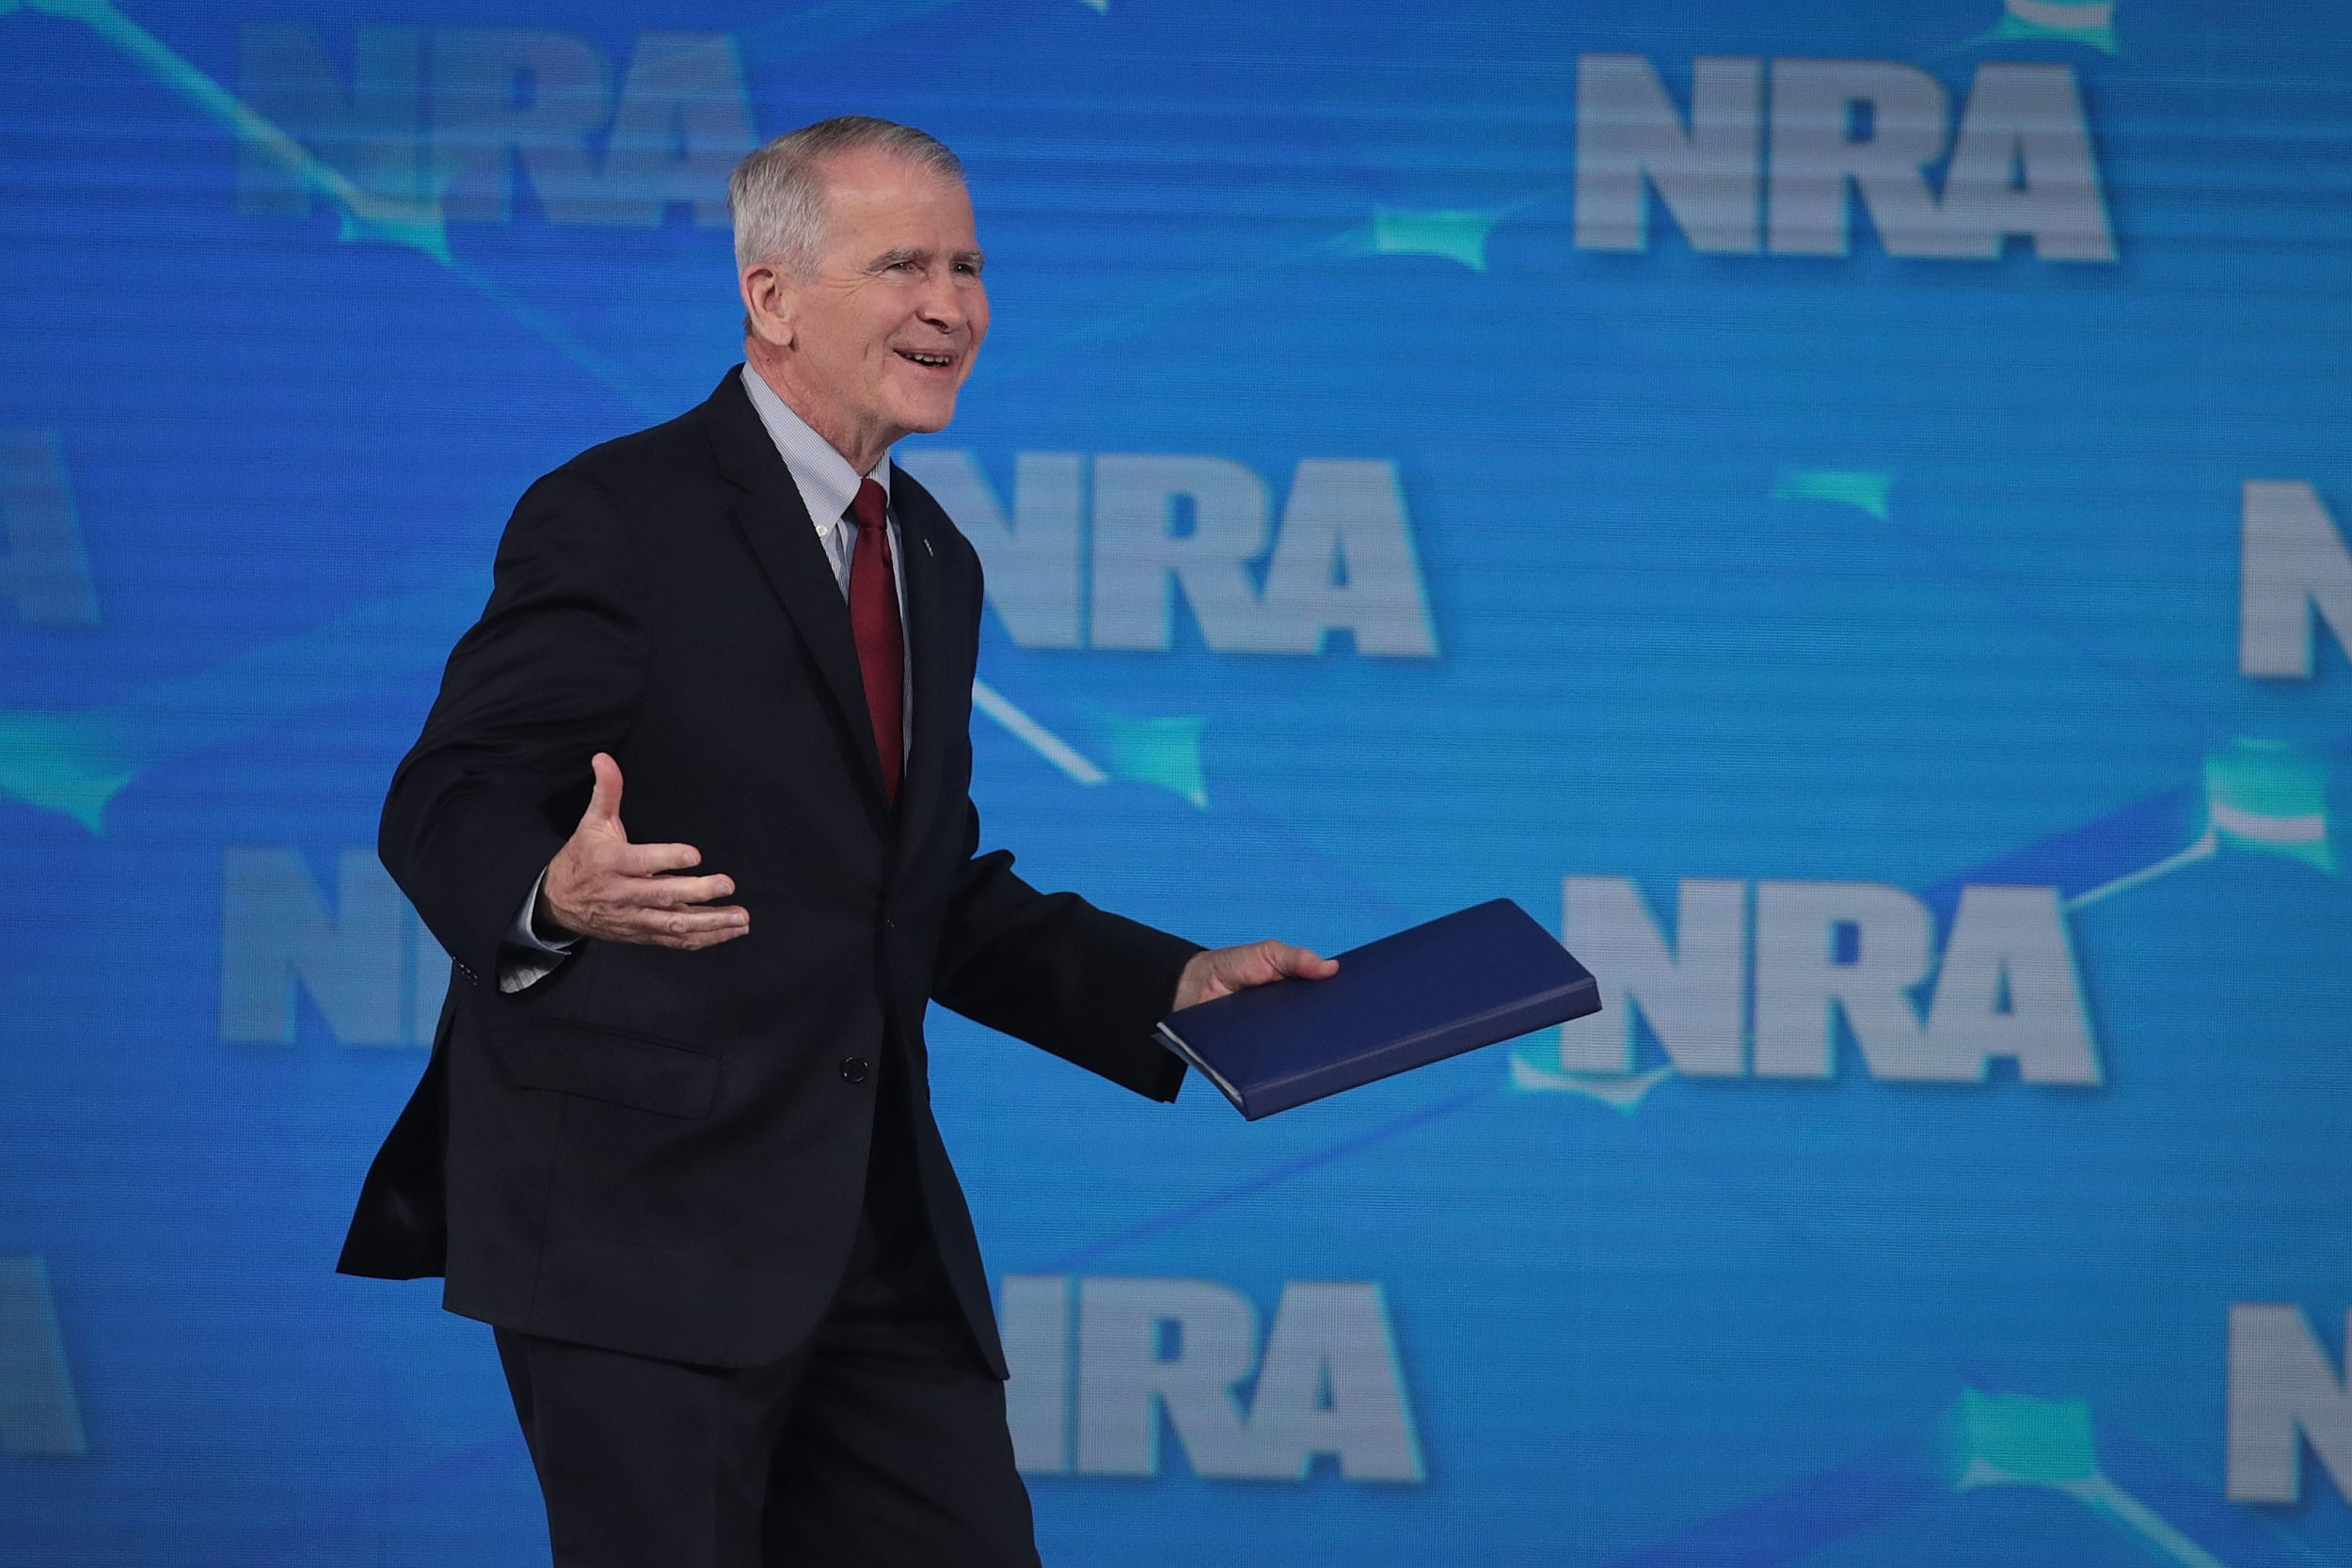 NRA President Oliver North Ousted after Extortion Allegations